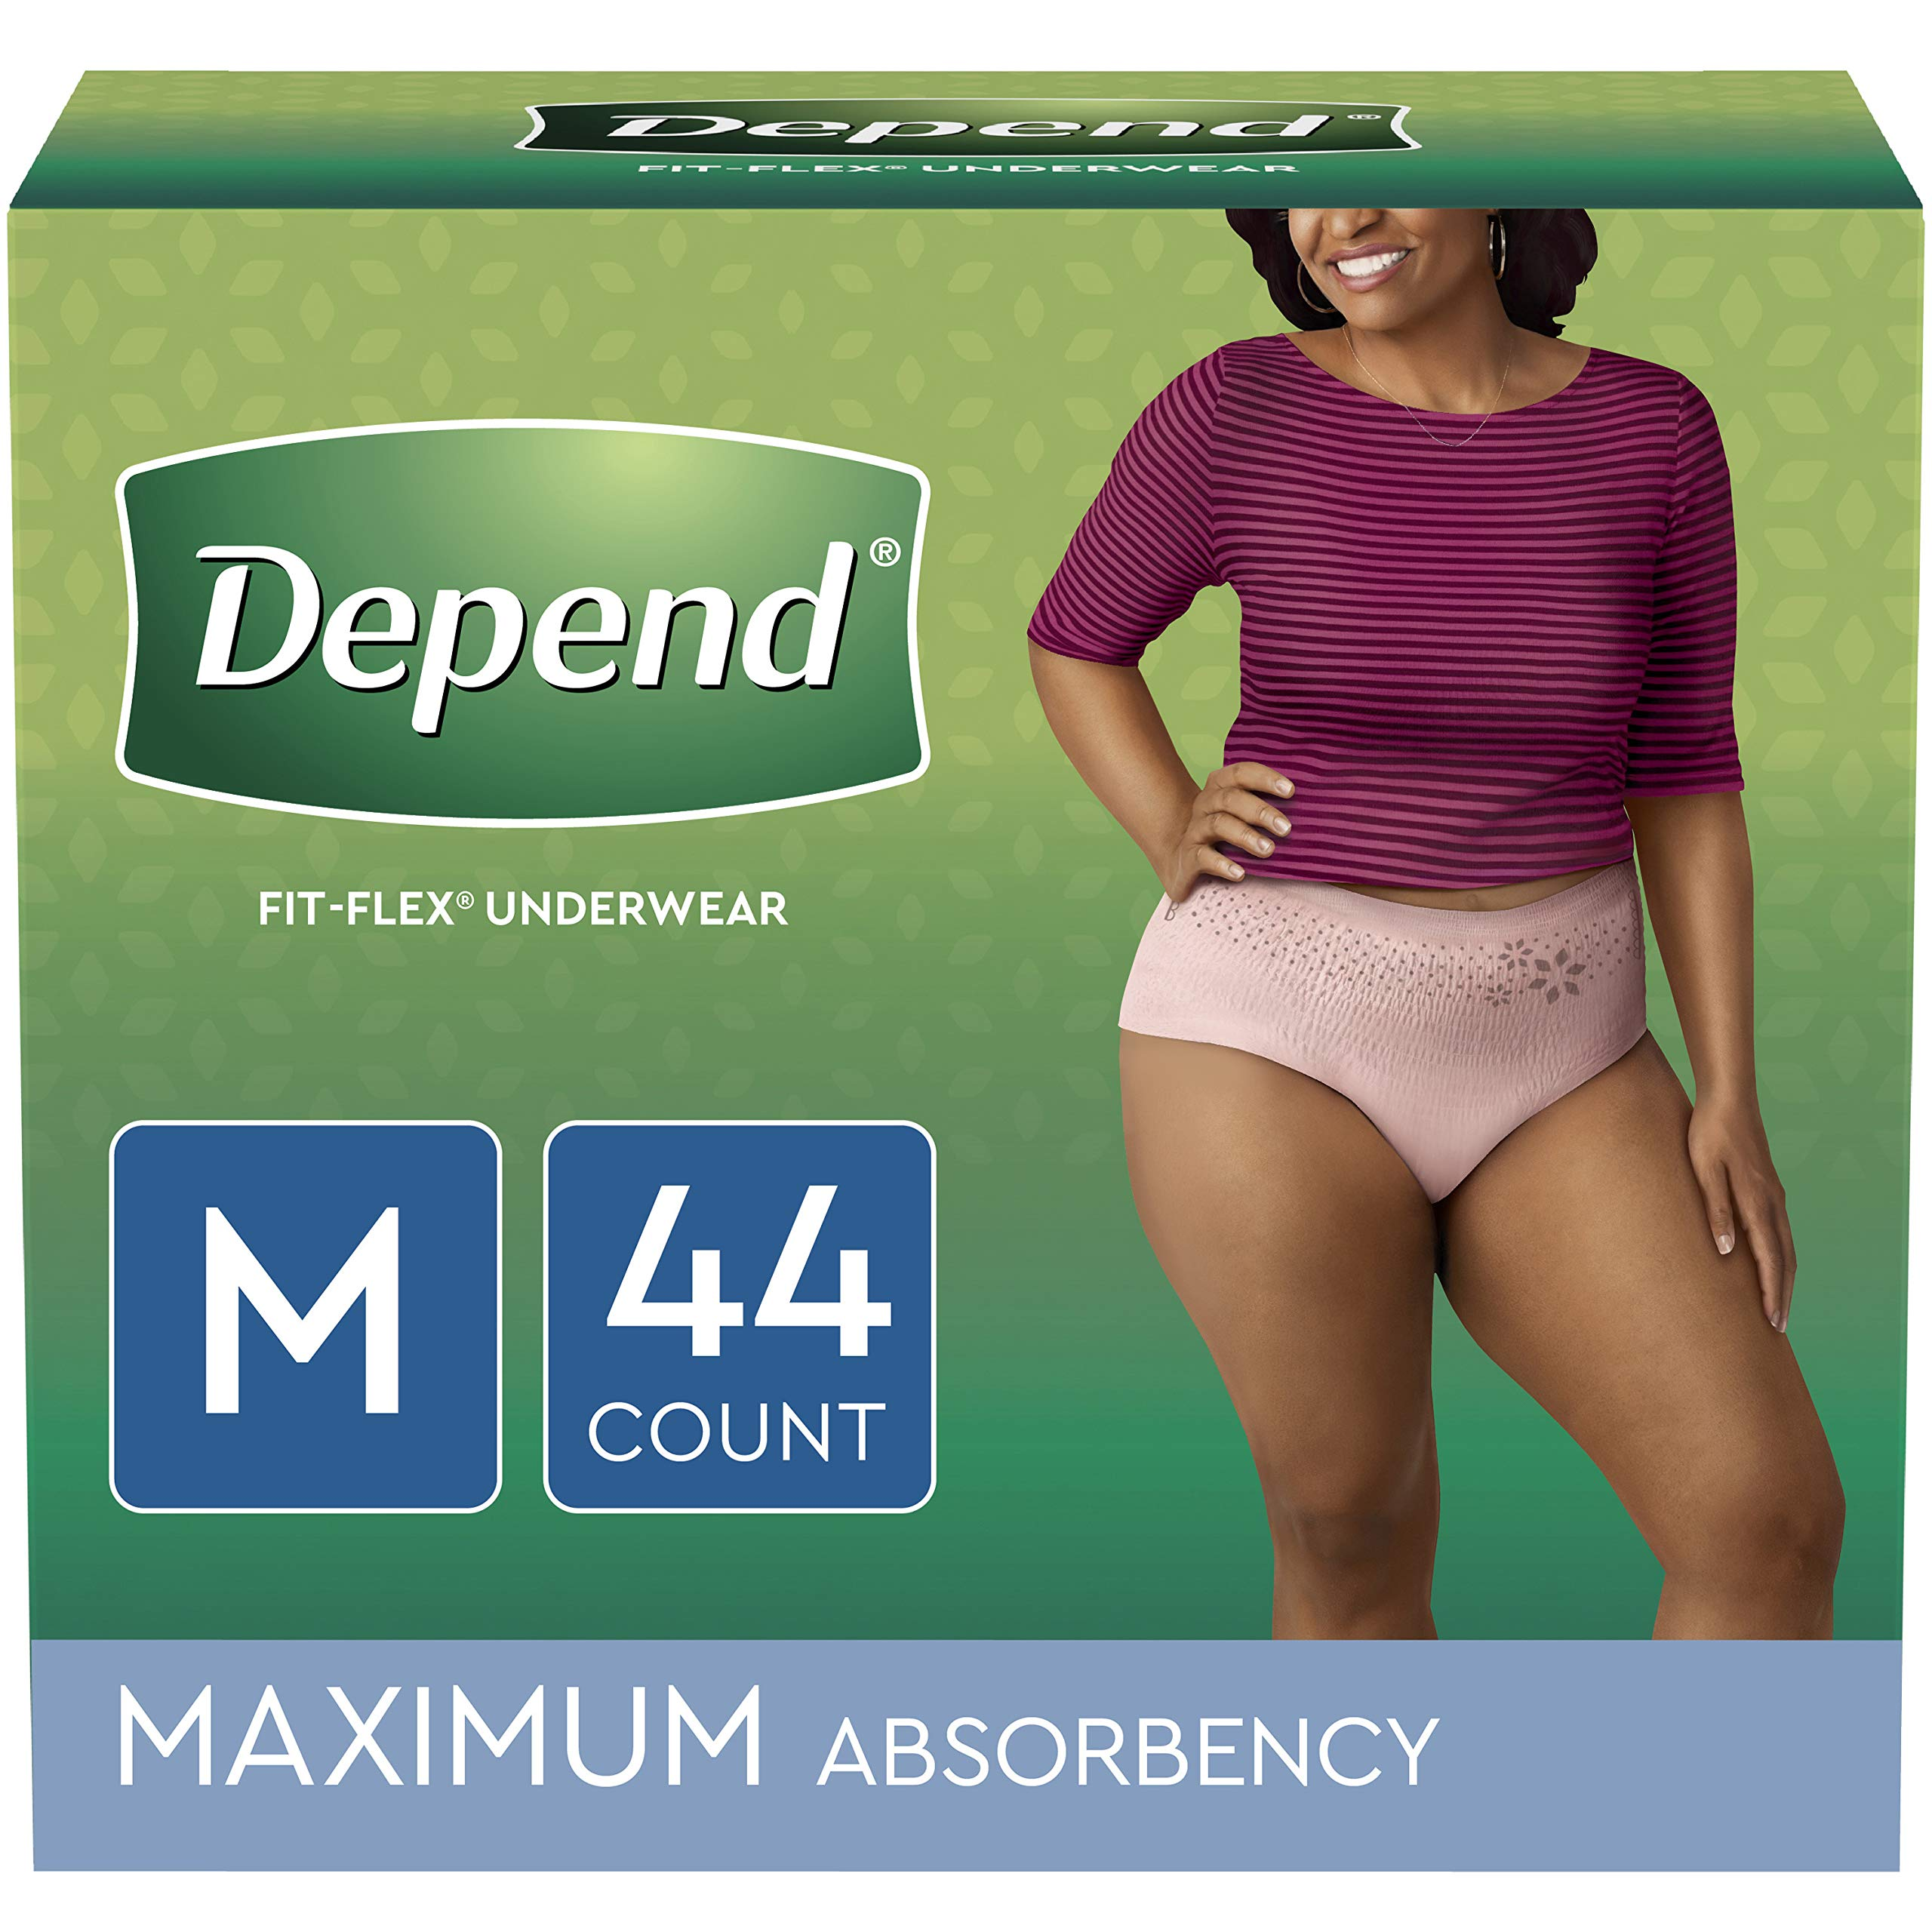 Depend FIT-FLEX Incontinence Underwear for Women, Disposable, Maximum Absorbency, M, Blush, 44 Count